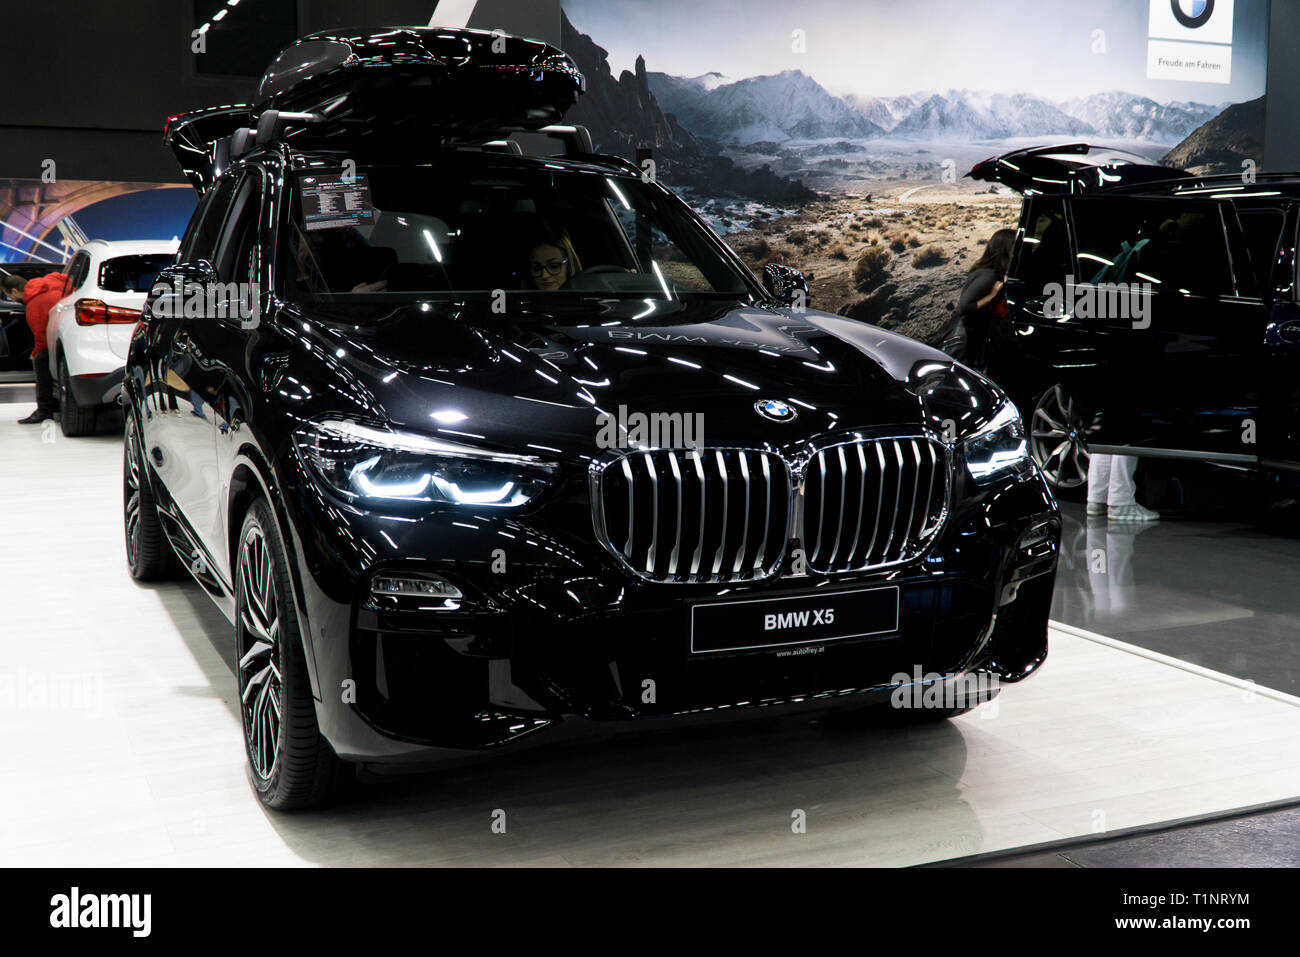 Salzburg, Austria - March 23rd, 2019: Young couple checking out the BMW X5 at the Salzburg car show - Stock Image